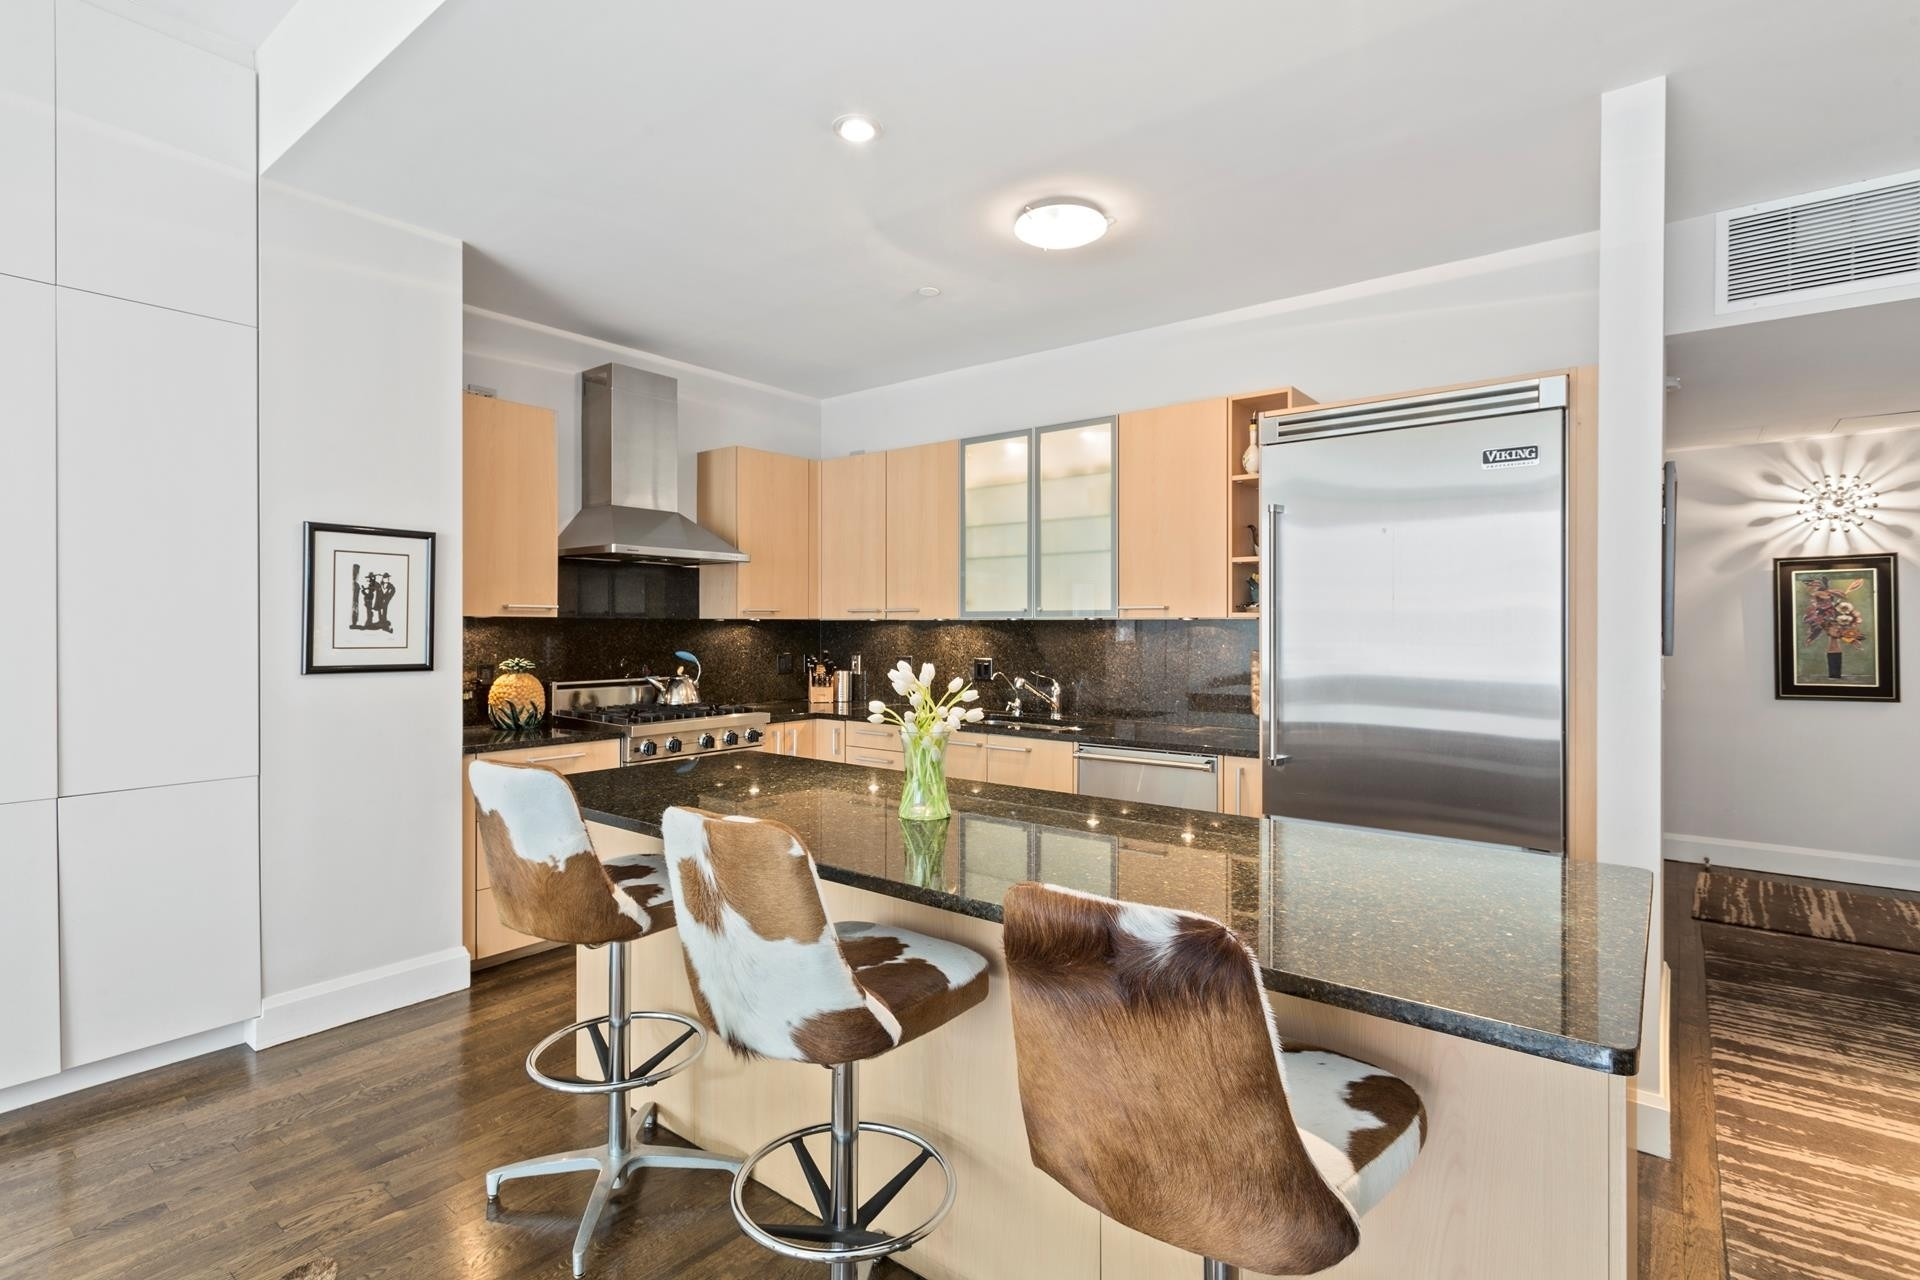 Condominium for Sale at The Lion's Head Condominium, 121 West 19th St, 7E Chelsea, New York, NY 10011